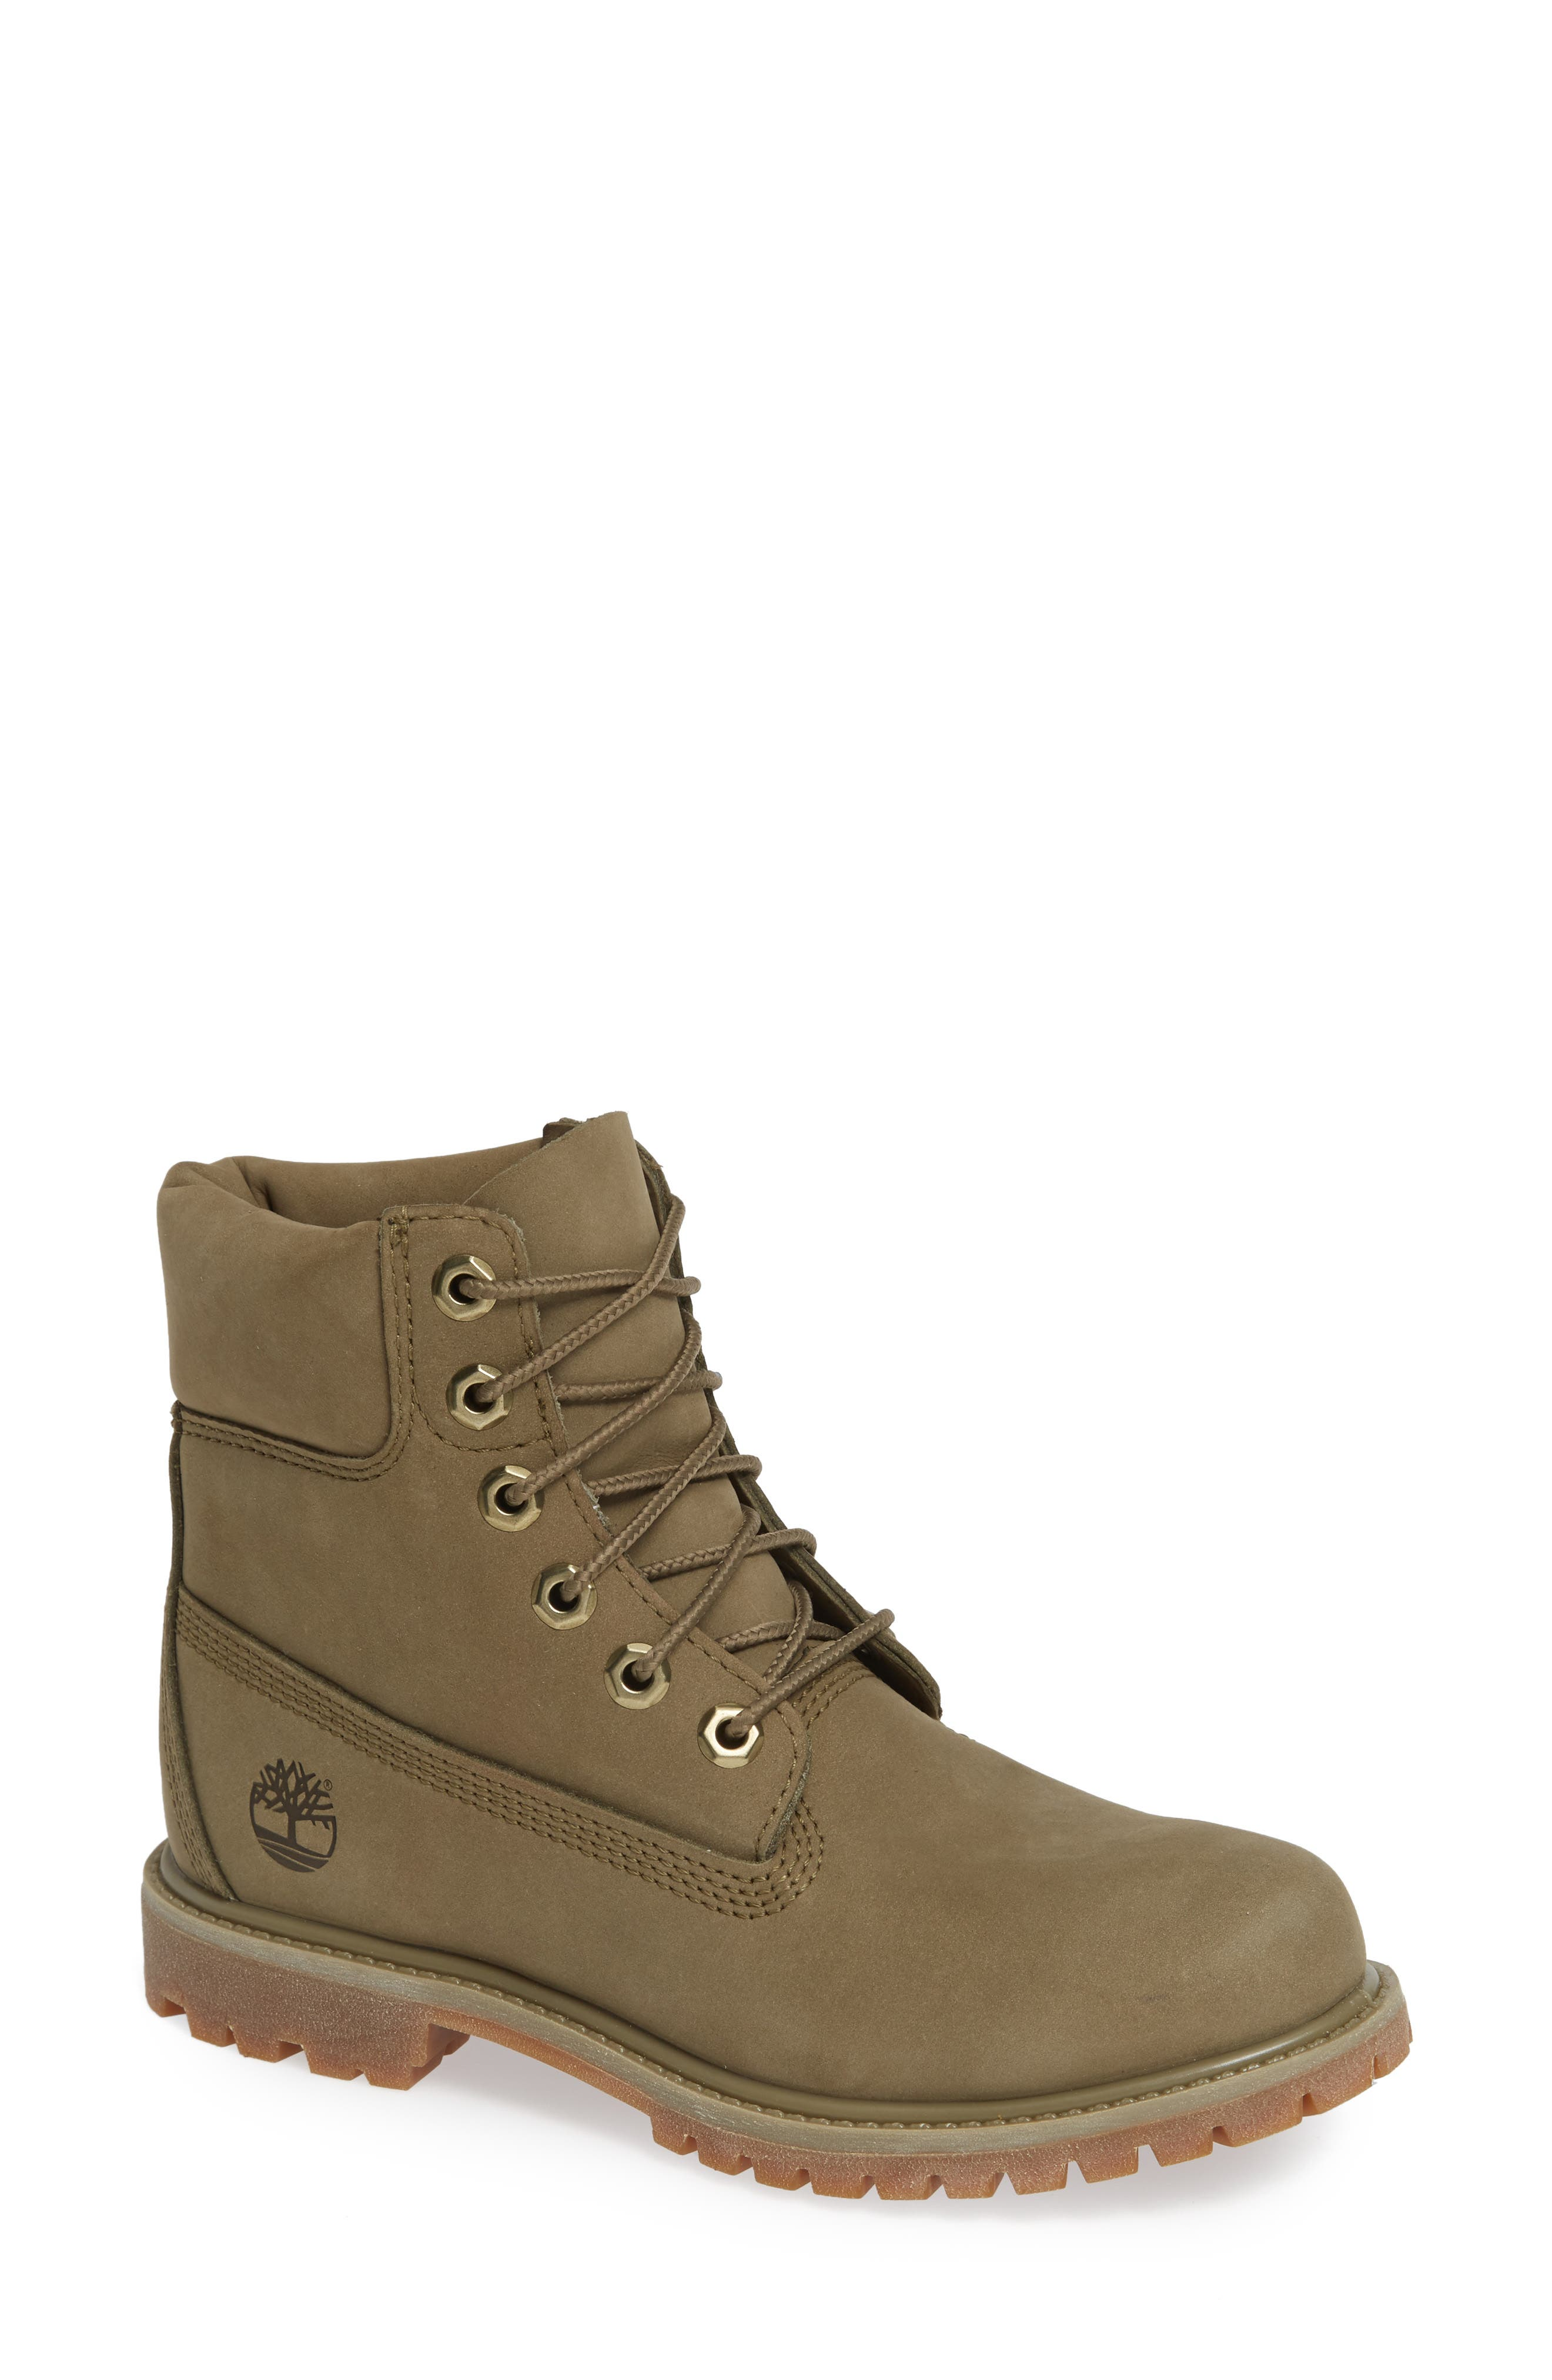 '6 Inch Premium' Waterproof Boot,                         Main,                         color, COVERT GREEN LEATHER